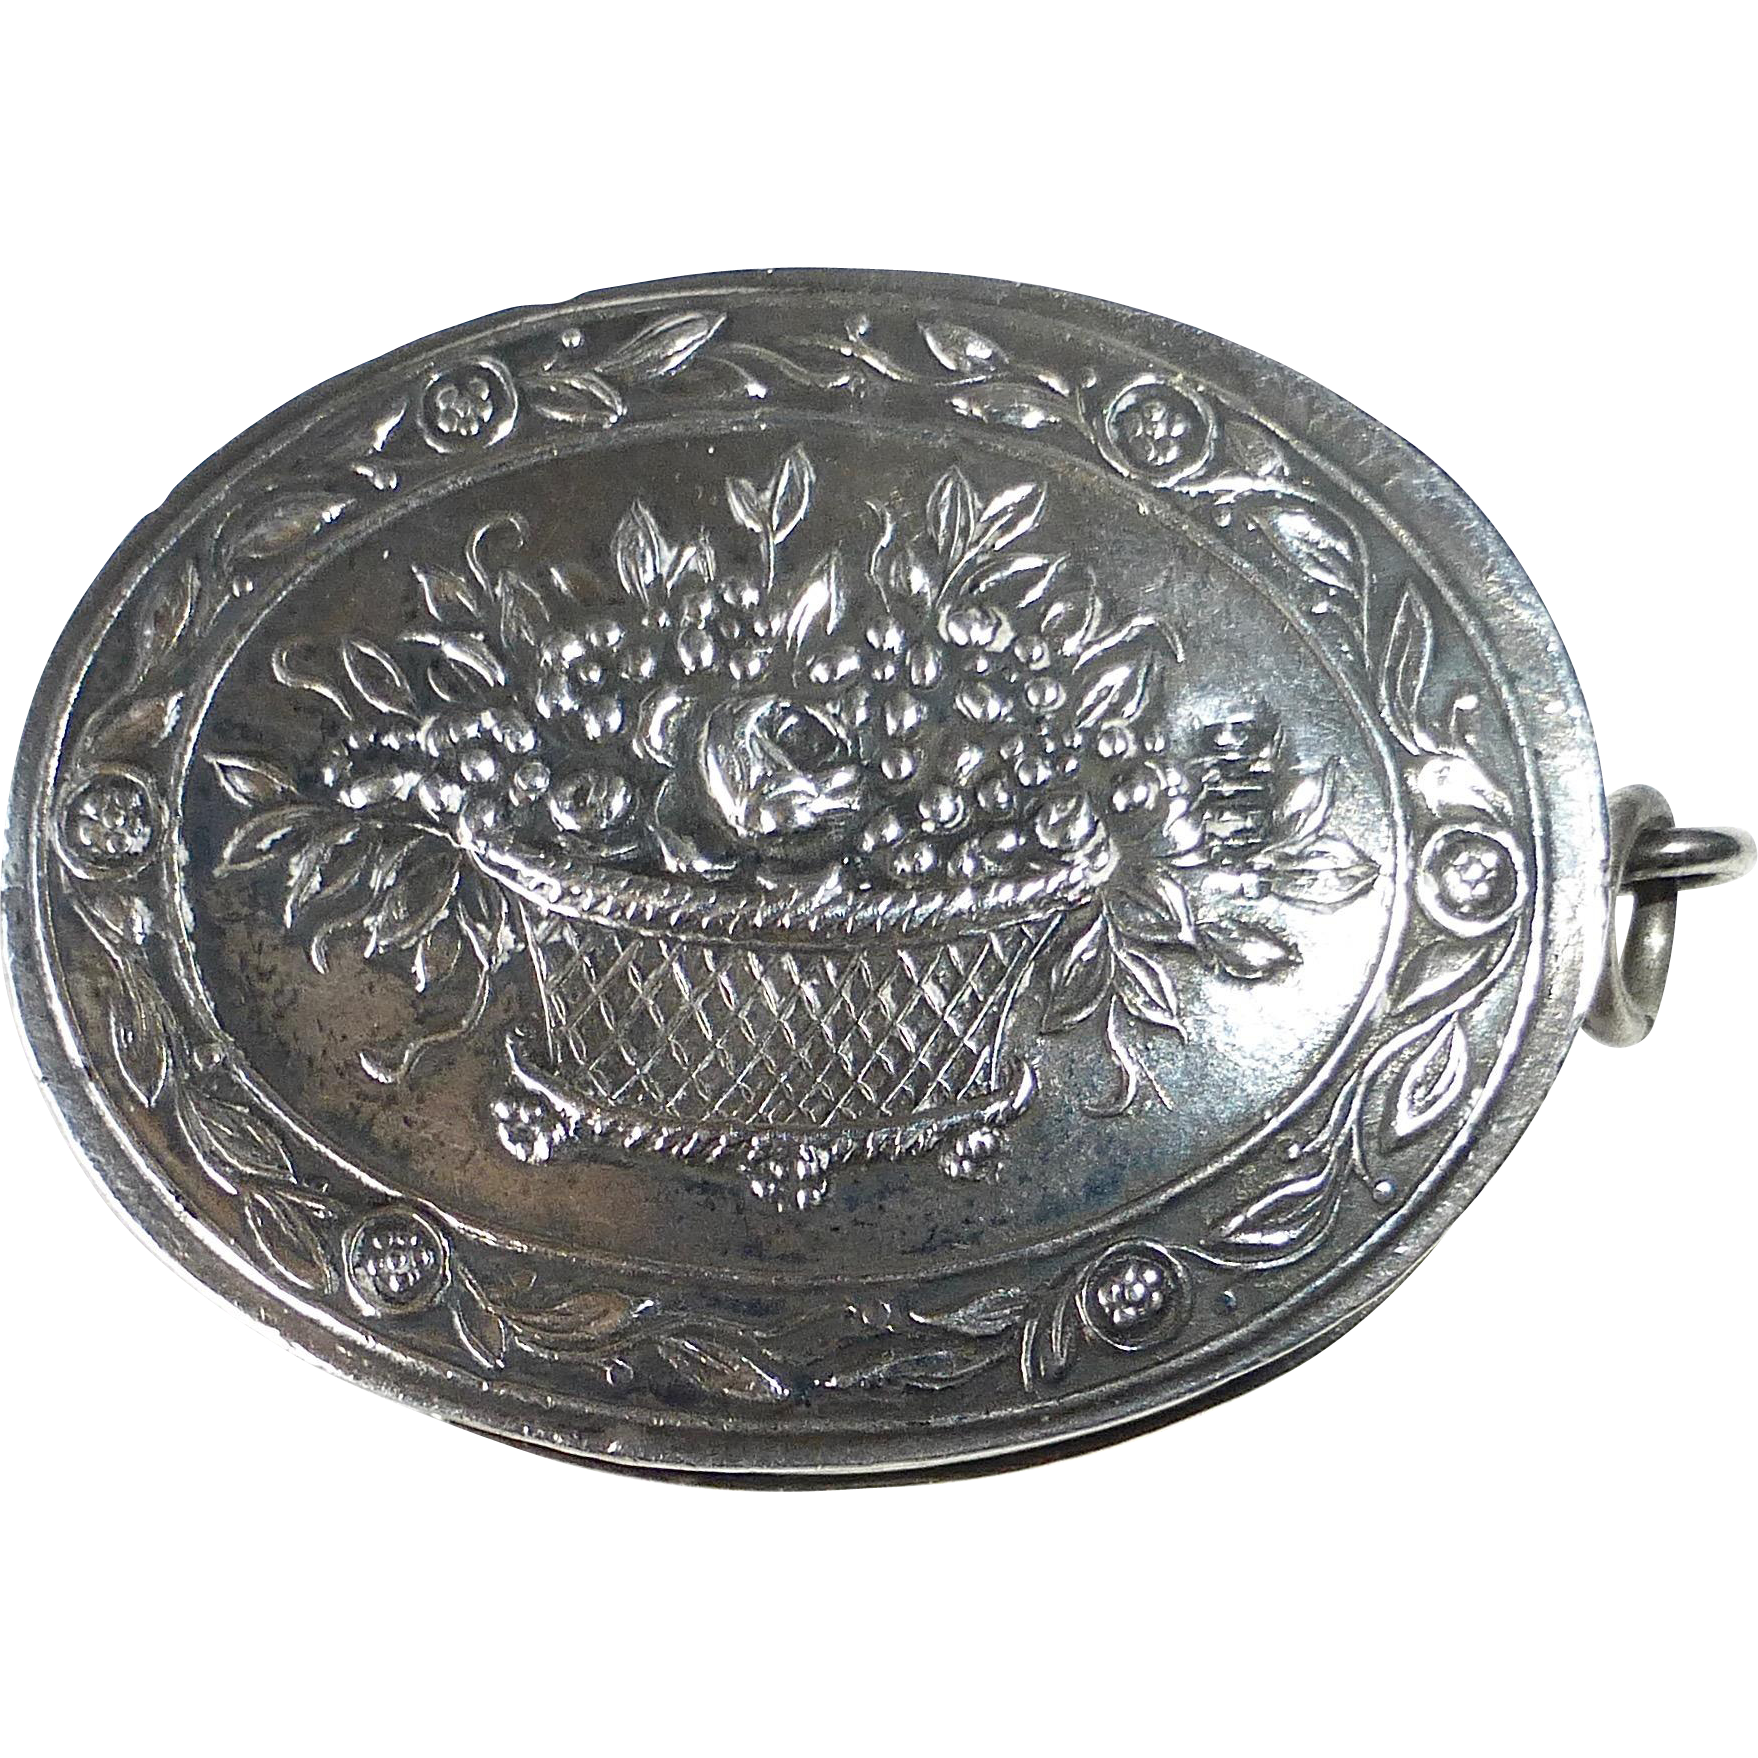 Sterling Chatelaine Oval Box Pendant Repousse Basket of Flowers